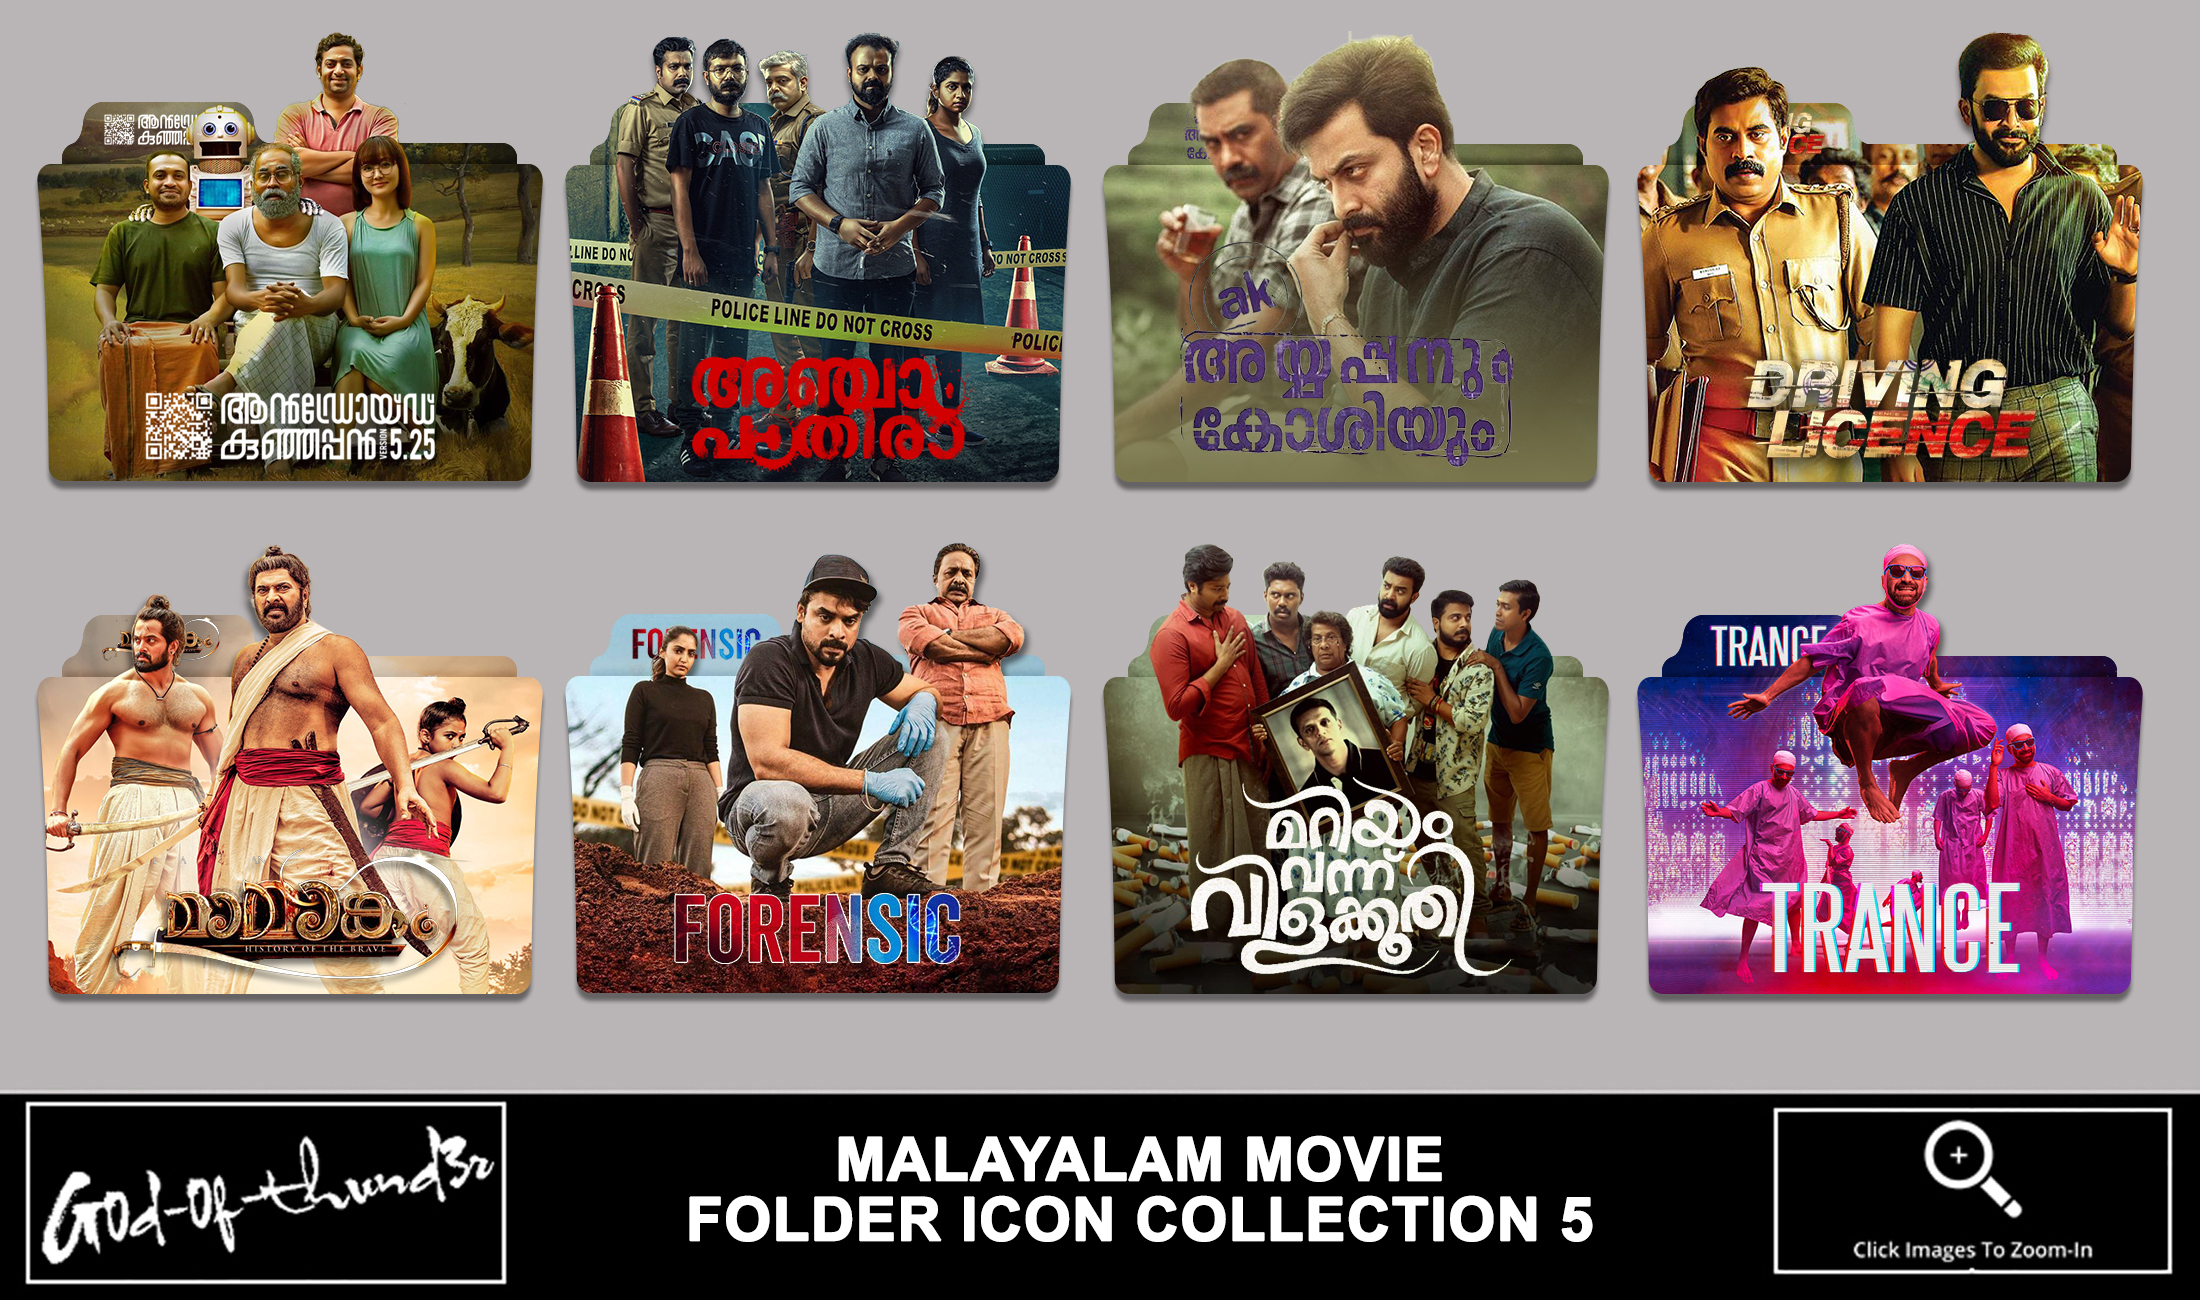 Malayalam Movie Folder Icon Collection 5 By G0d 0f Thund3r On Deviantart